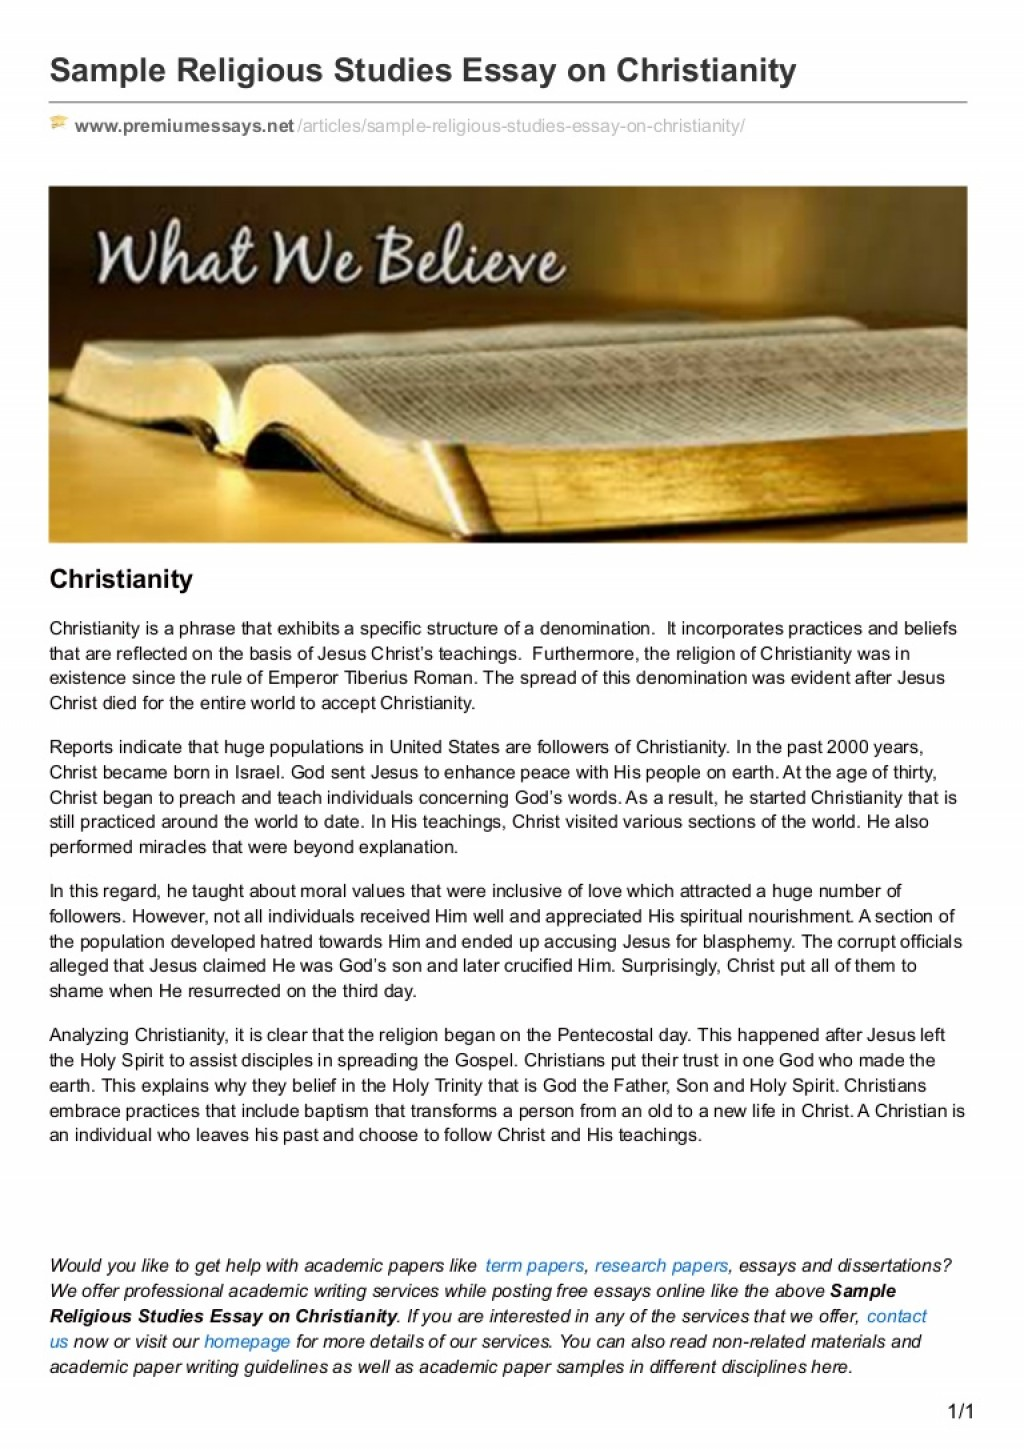 007 Essay Example On Christianity Premiumessays Thumbnail Frightening Religious Festivals In Hindi Language Conflicts India Large